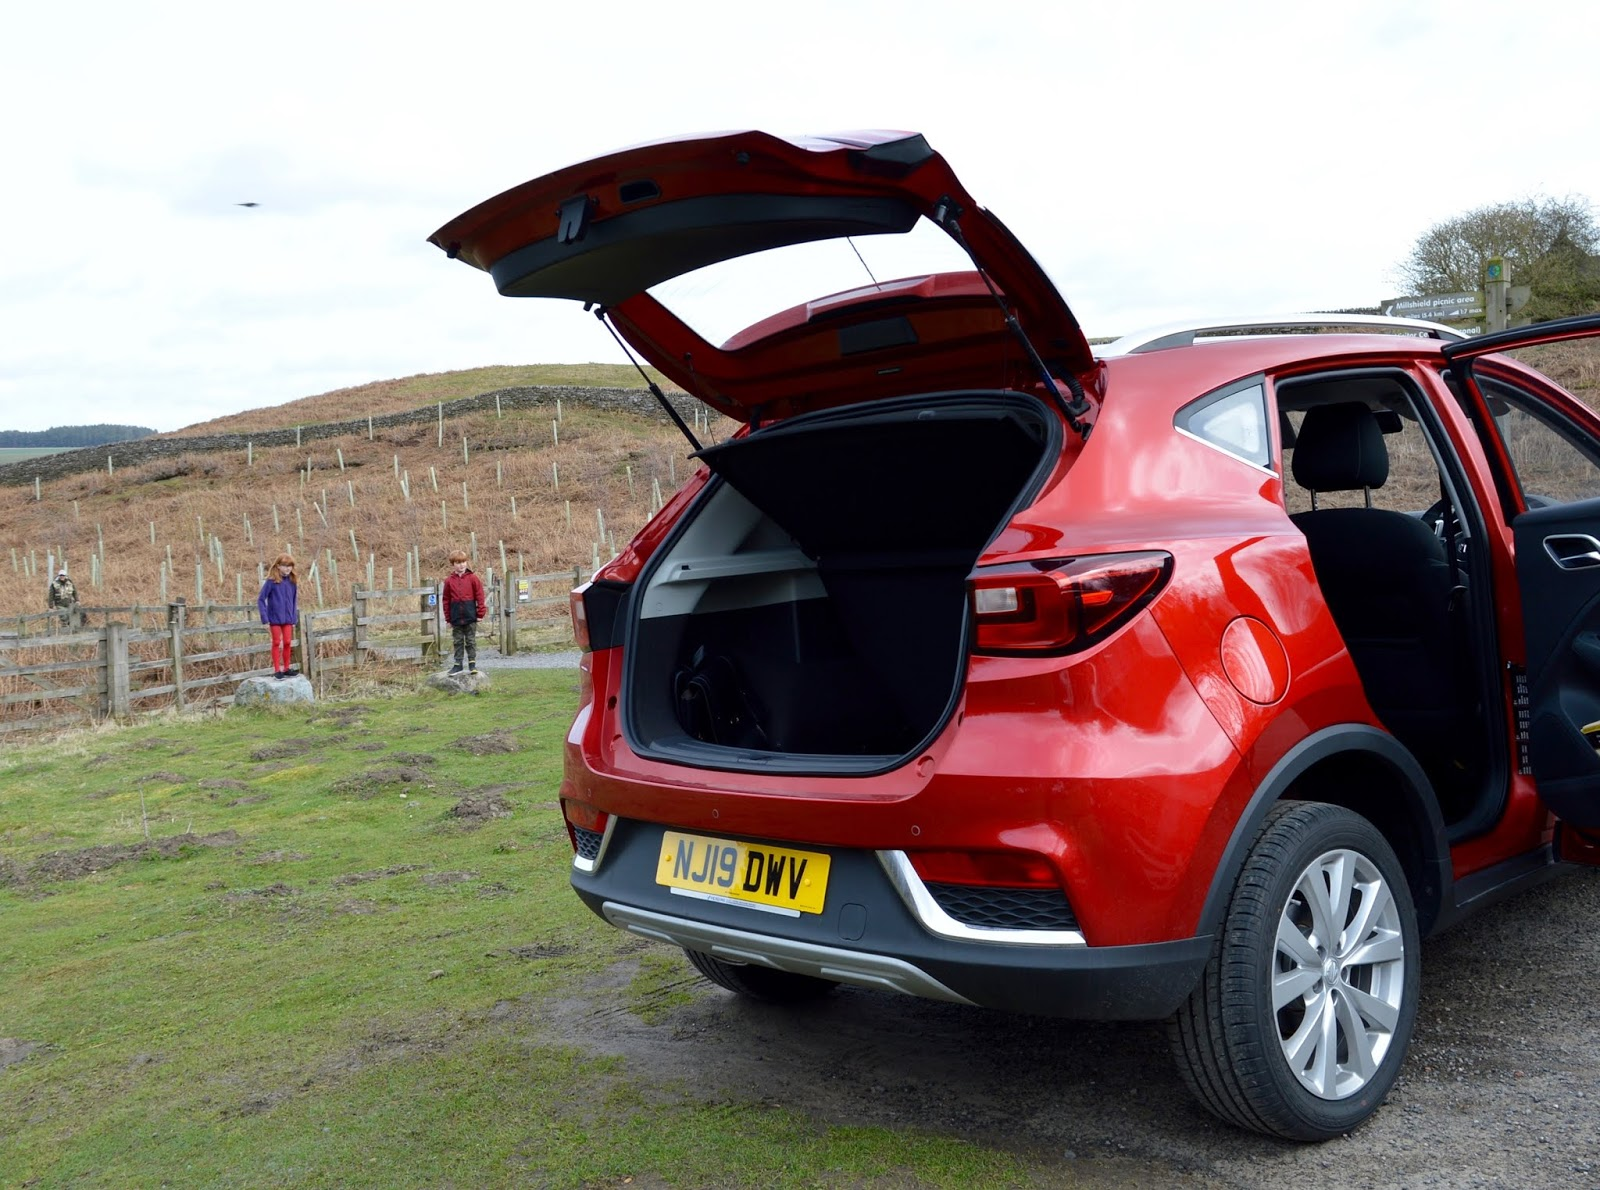 MG ZS 1.5 Excite Review | A New Compact SUV for less than £13,000 - boot space